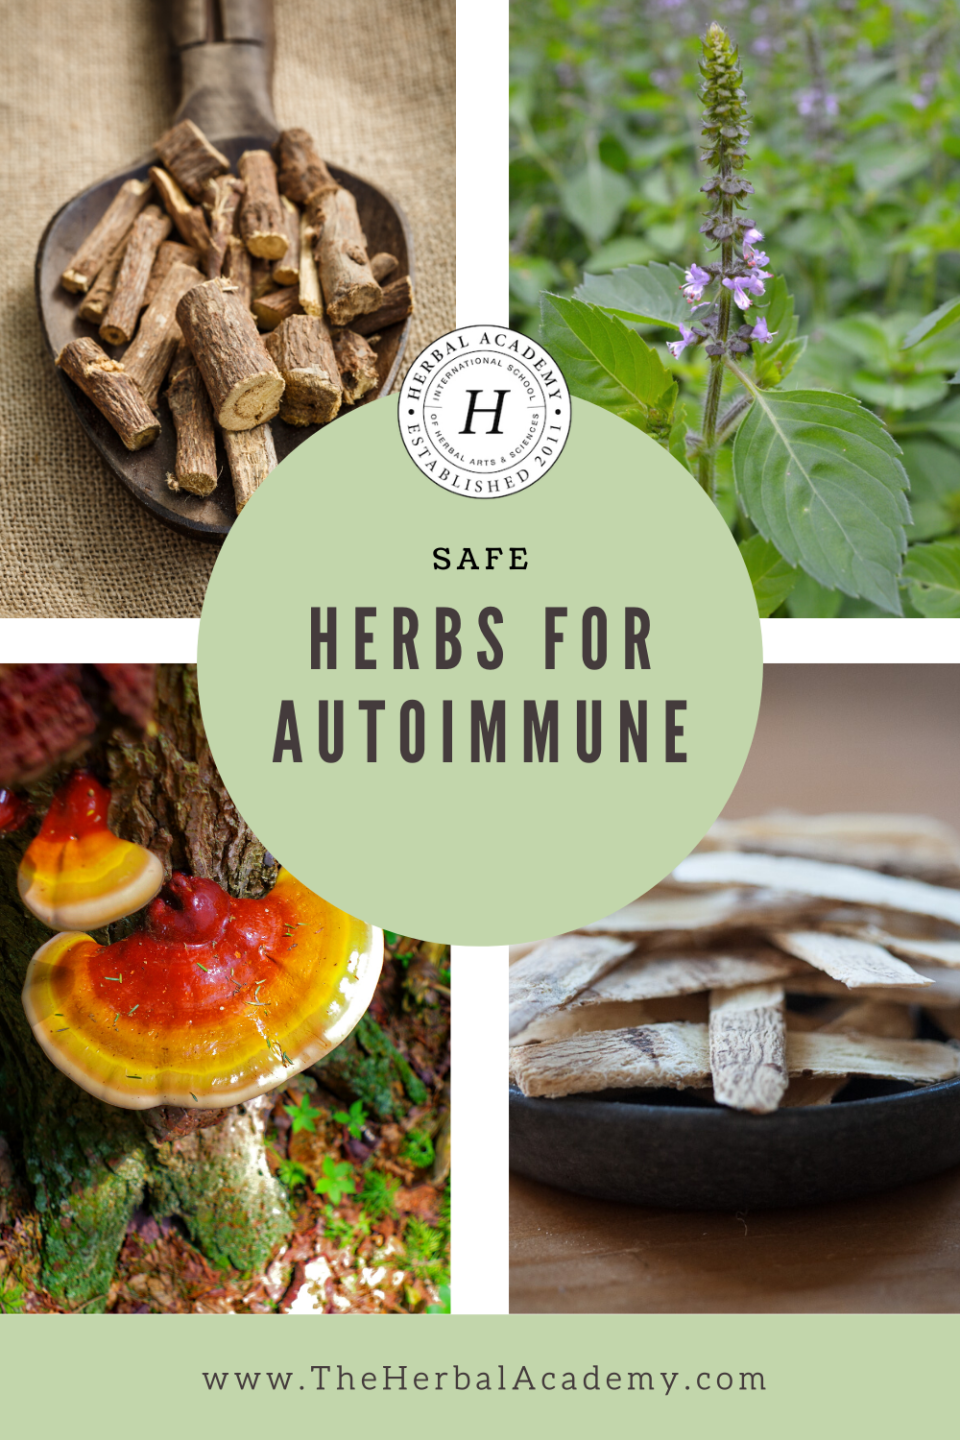 Safe Antiviral Herbs for Autoimmune Disease   Herbal Academy   Finding immune-supportive, antiviral herbs for autoimmune disease requires an extra layer of care and research by the individual or practitioner.